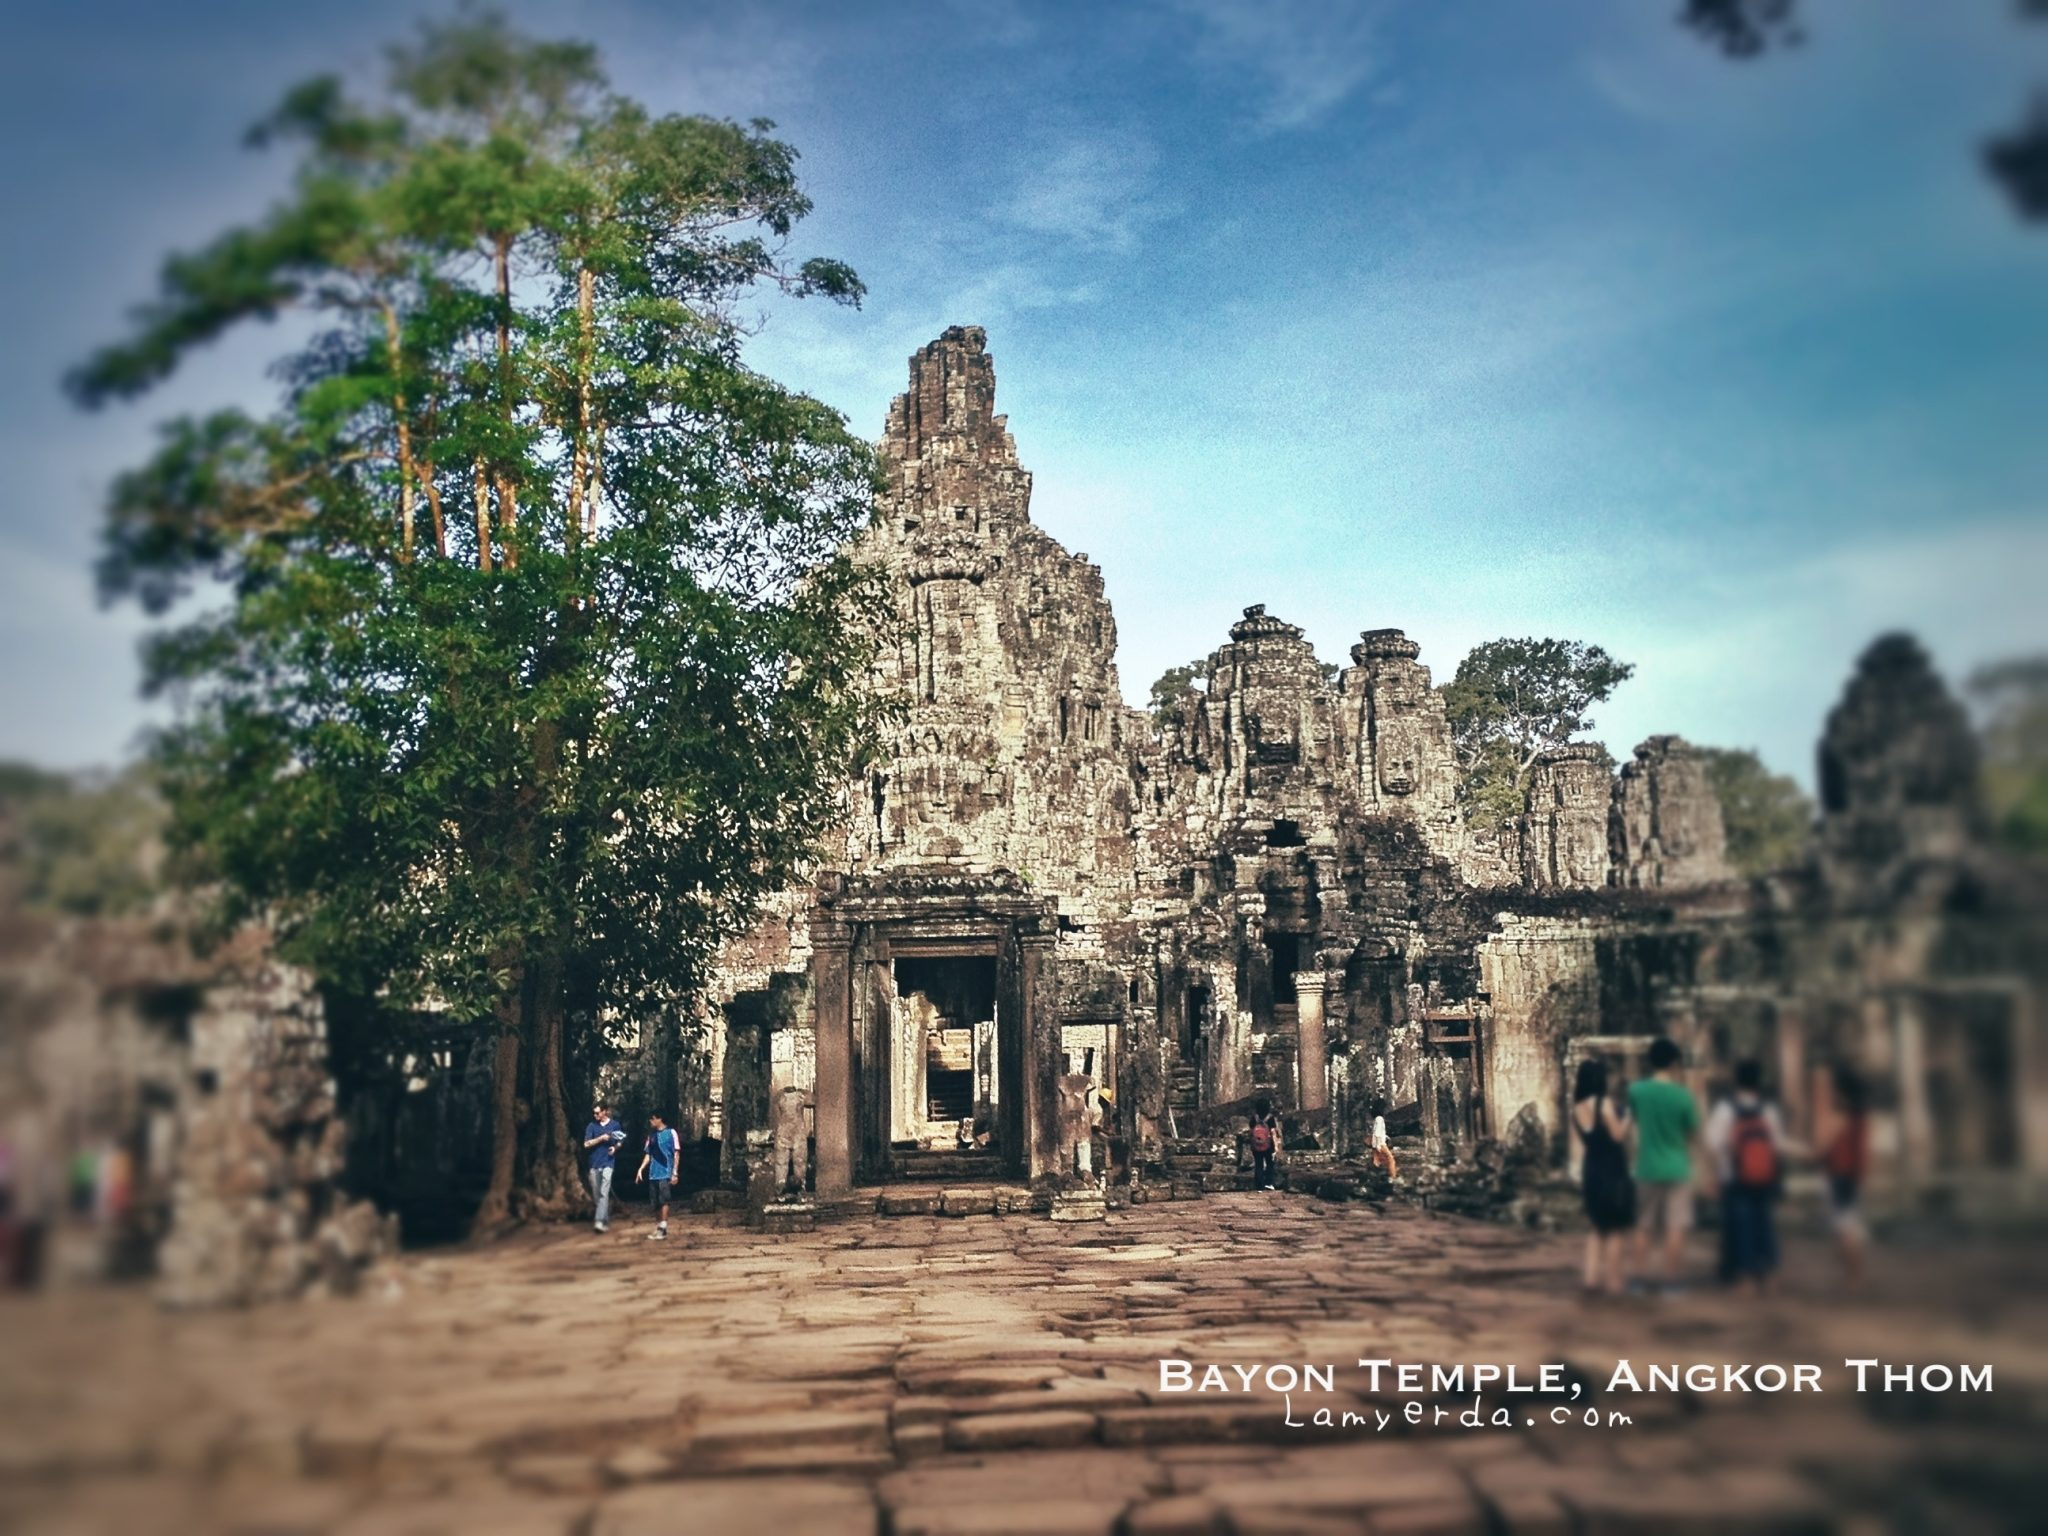 Bayon Temple at first glance